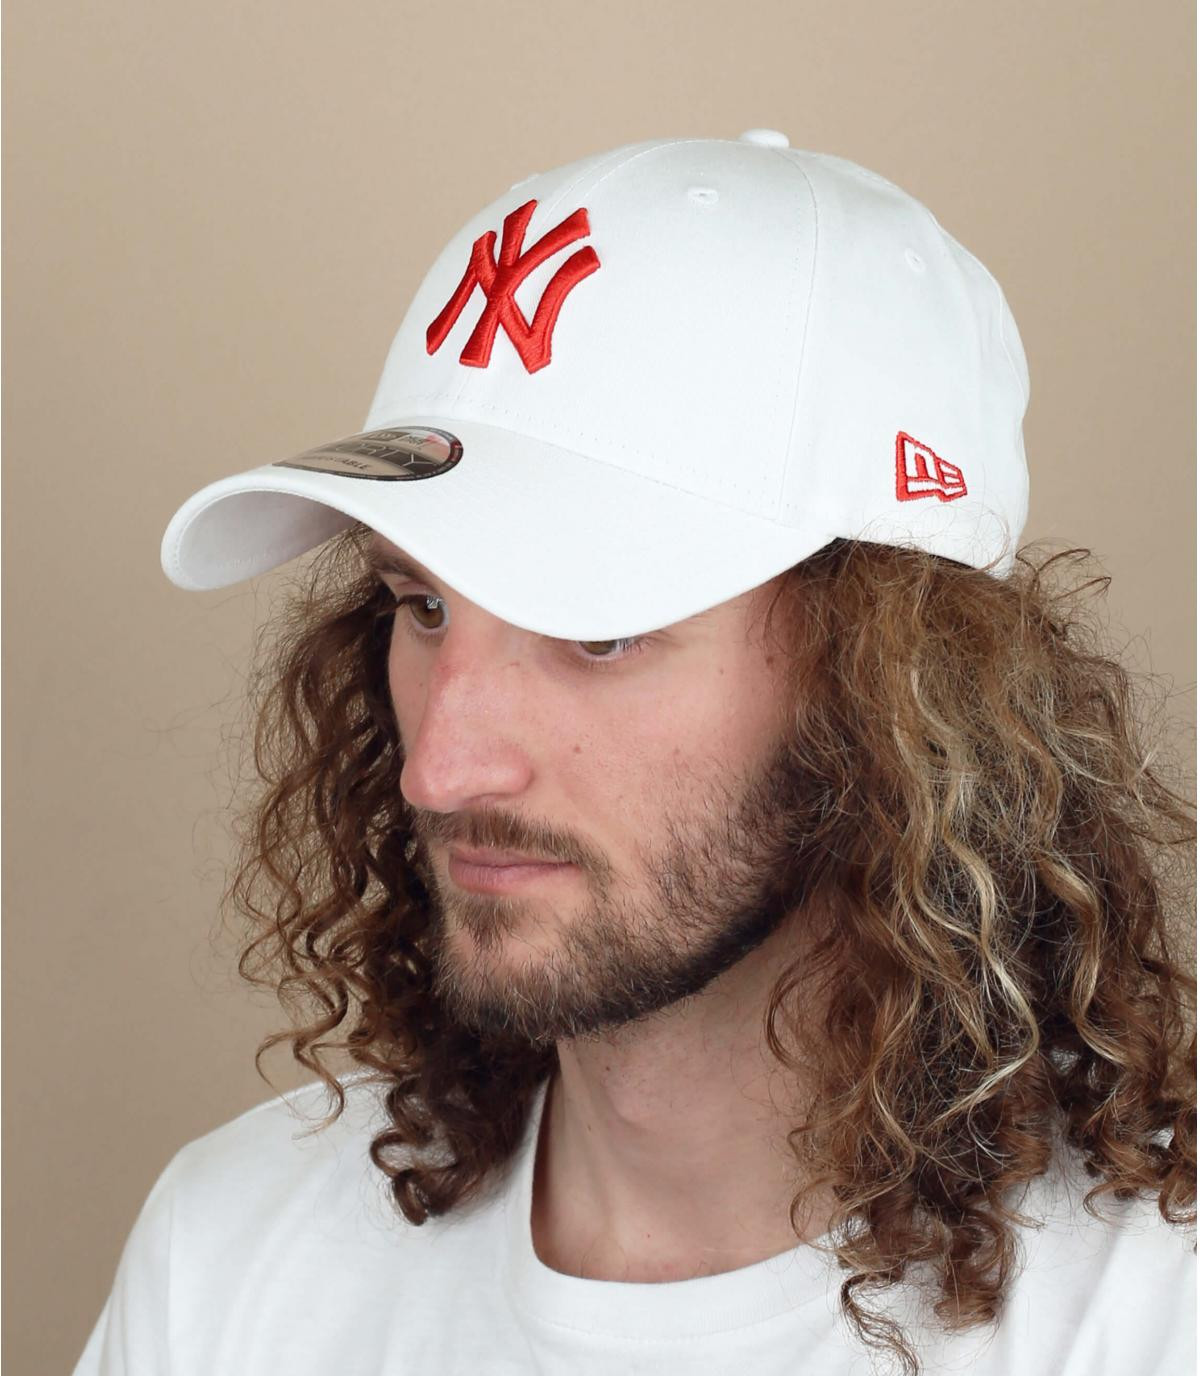 casquette NY blanc rouge